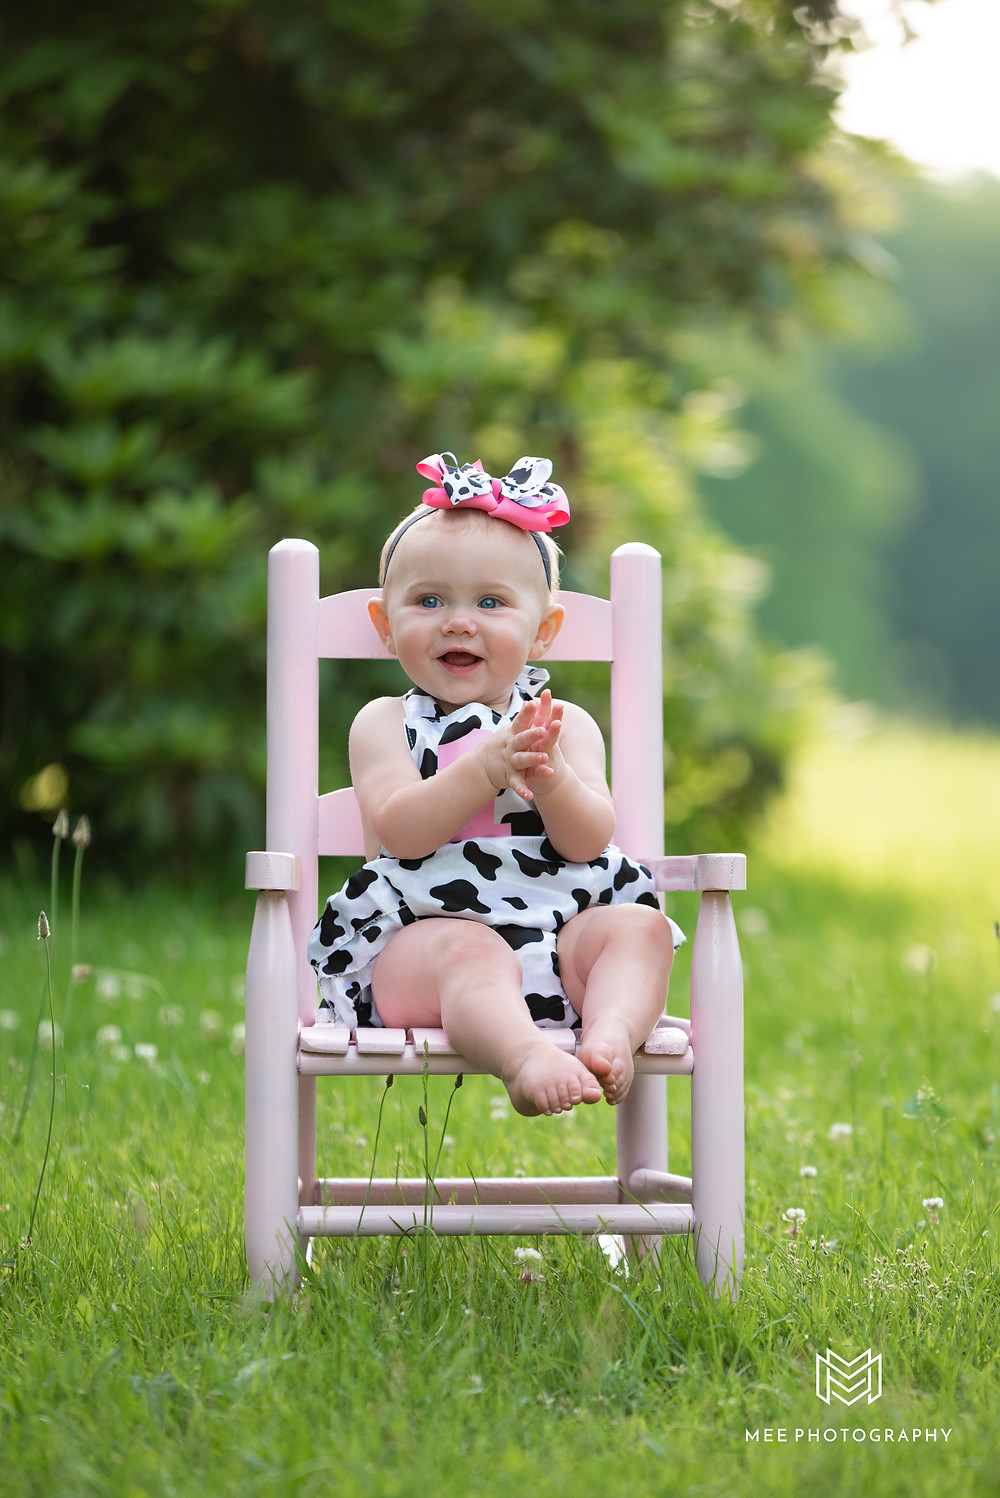 Little girl in cow outfit sitting in a pink chair outside during her first birthday photos